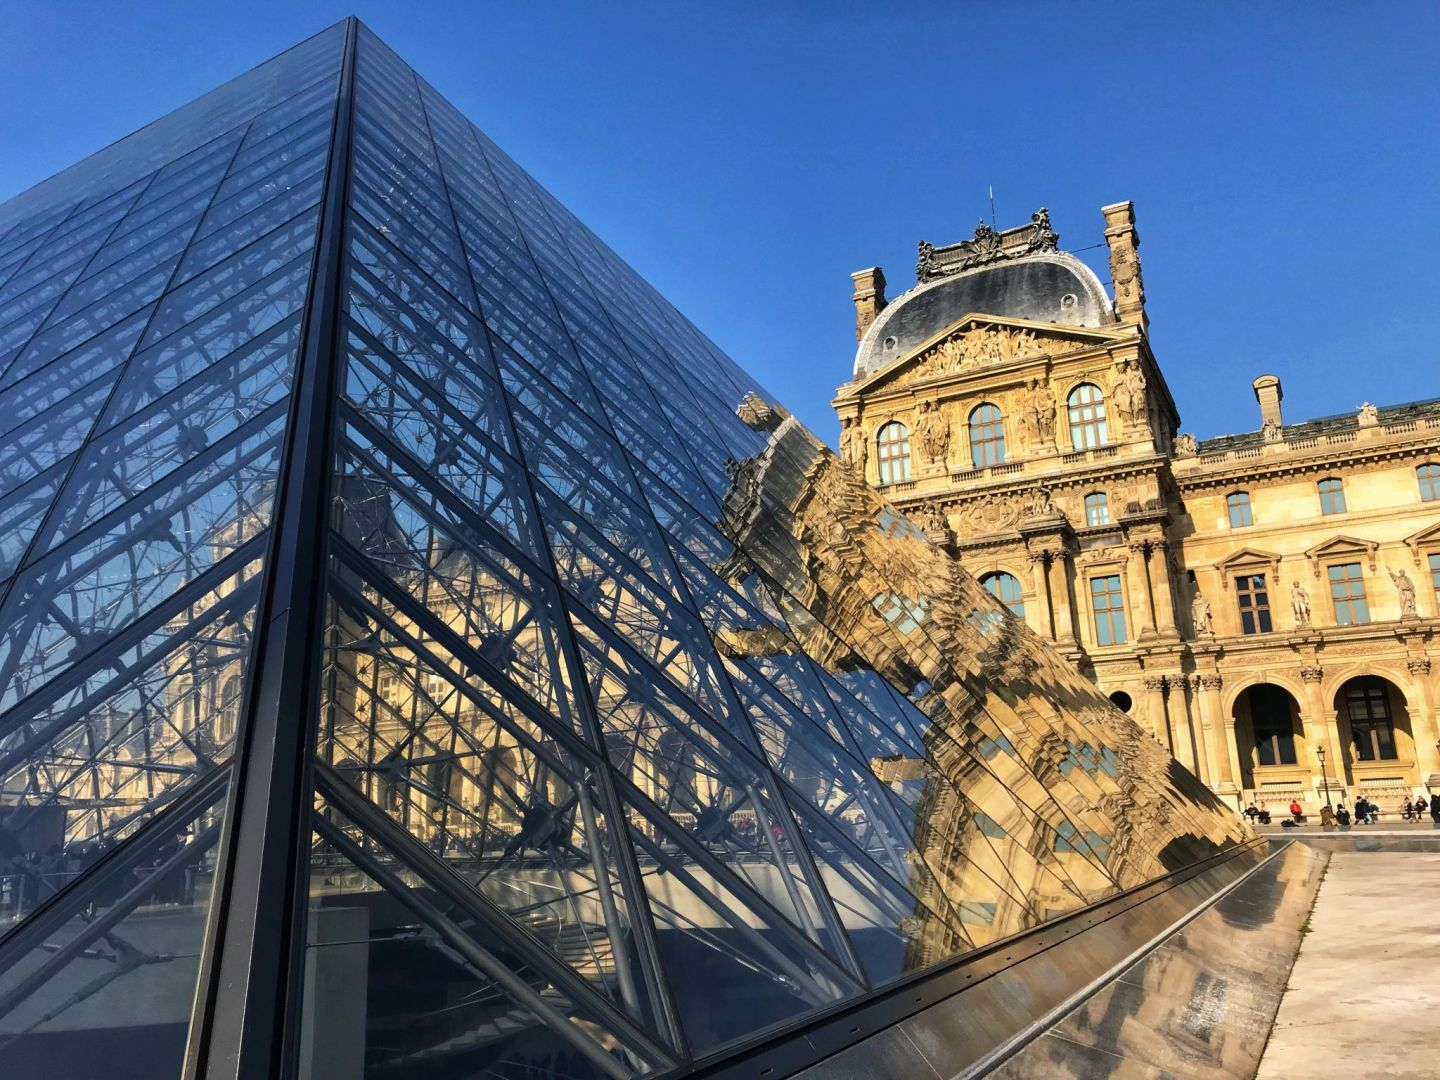 The Louvre a must see attraction in Paris